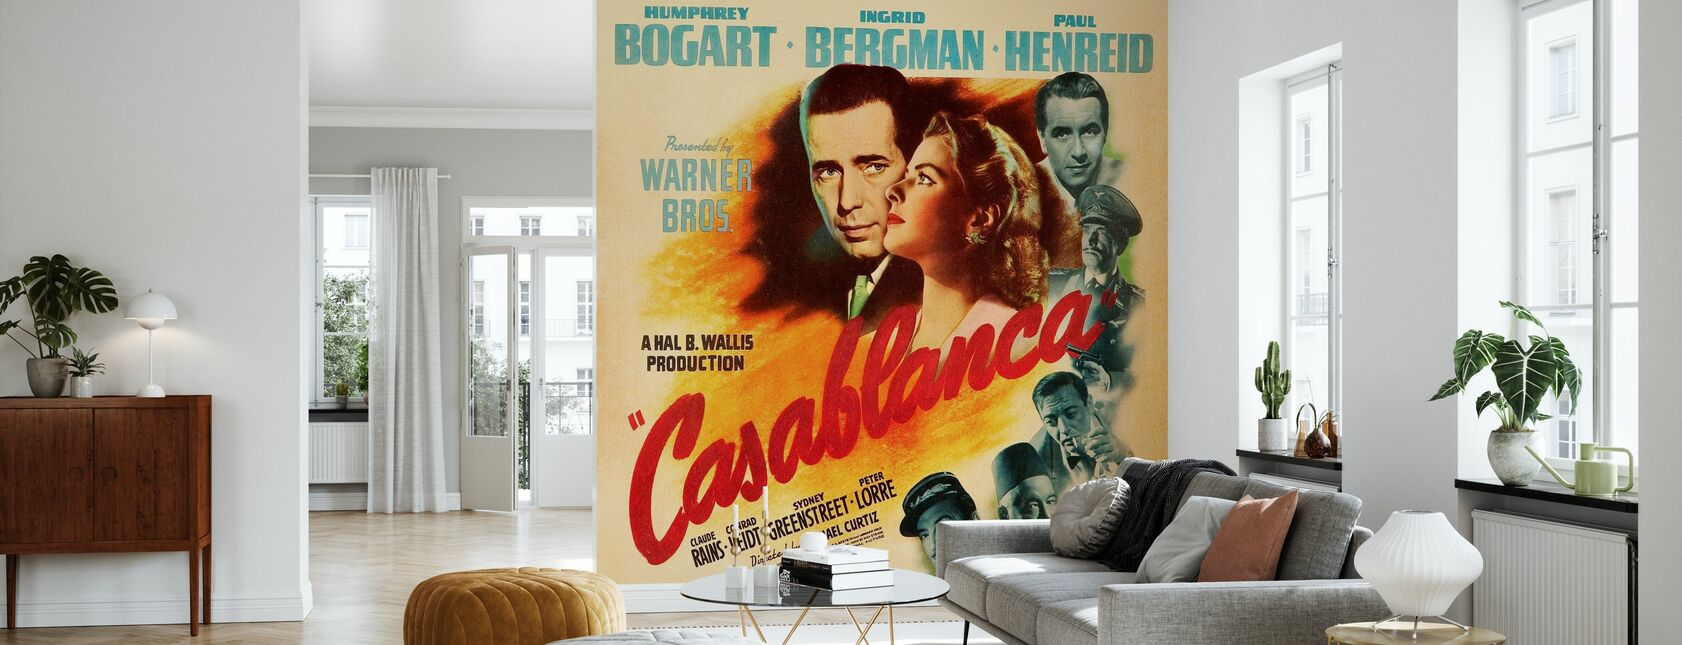 Movie Poster Casablanca - Wallpaper - Living Room